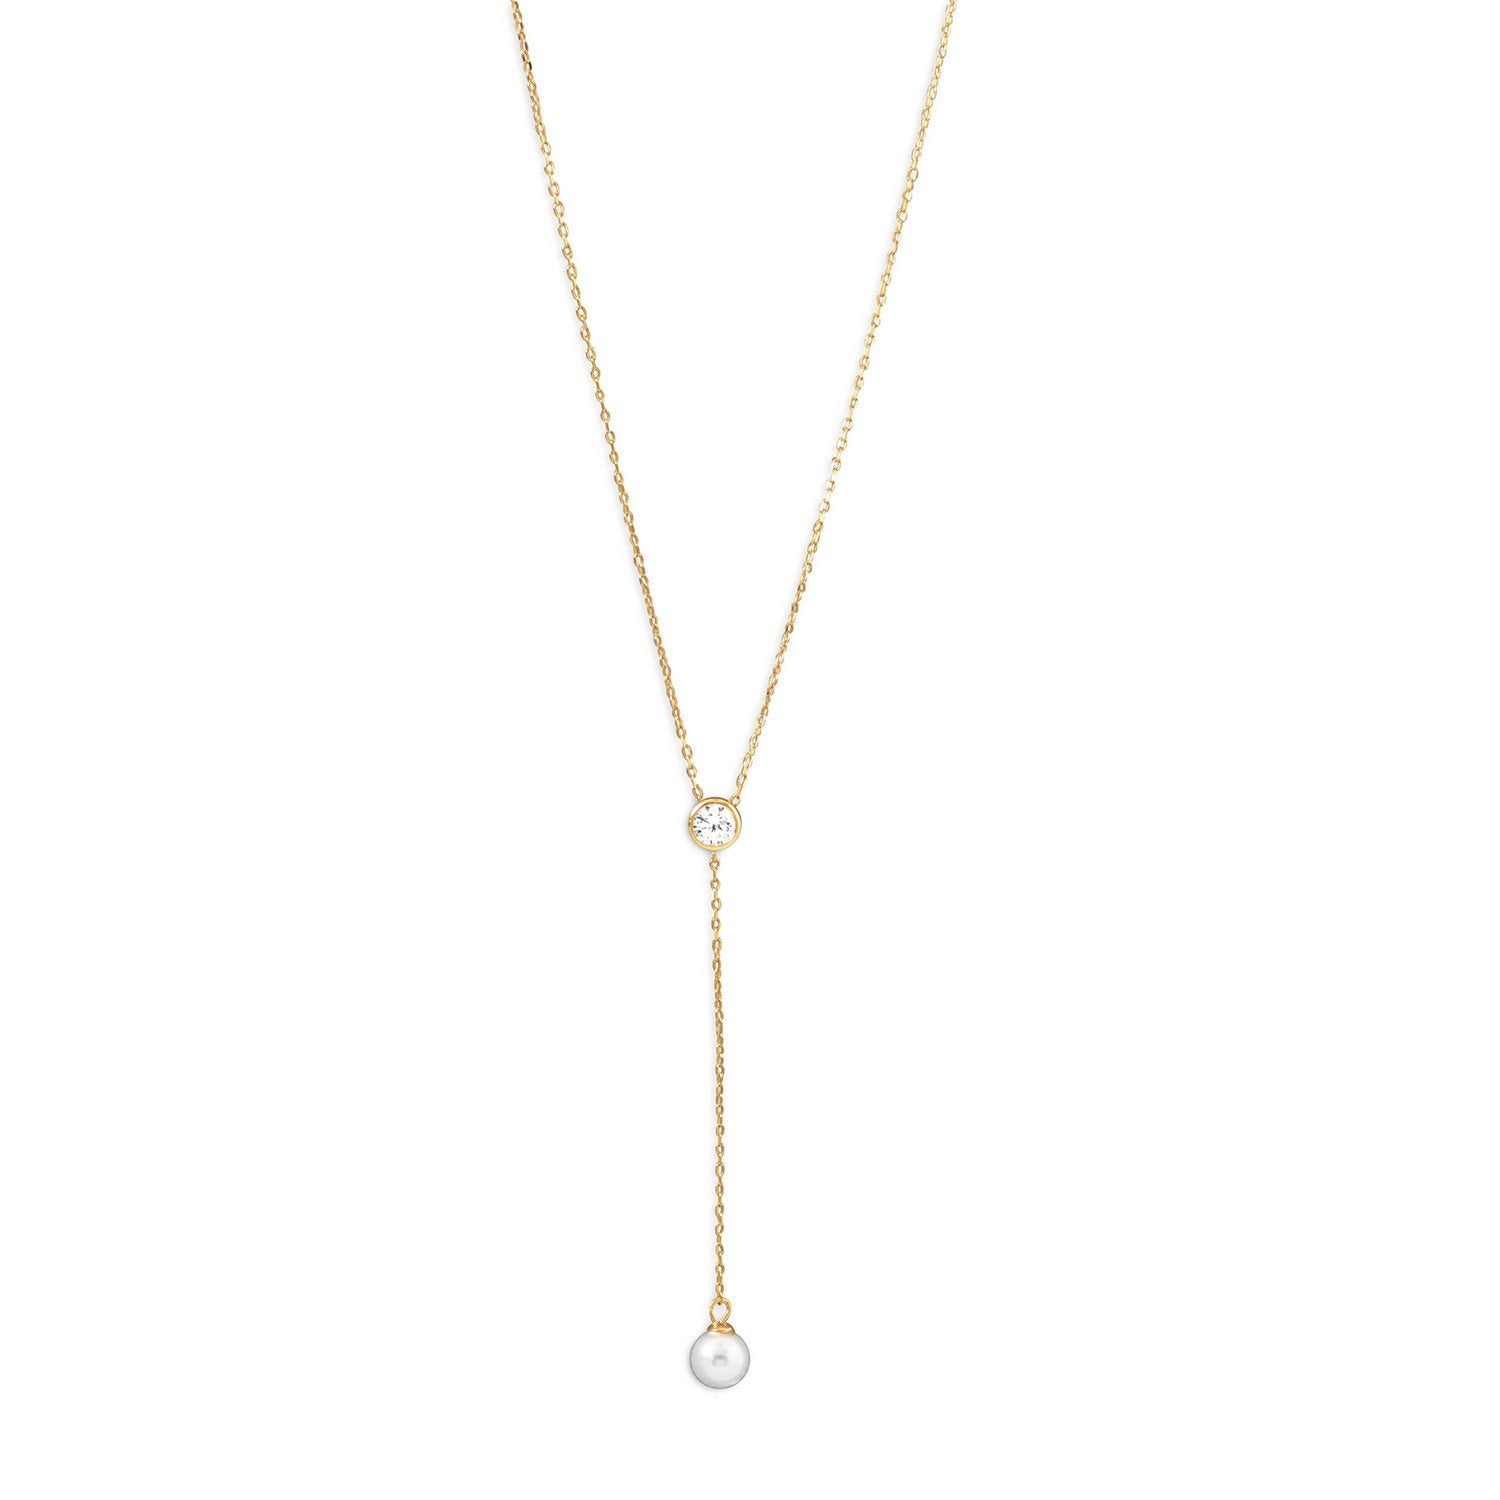 14 Karat Gold Plated Necklace with CZ and Imitation Pearl Drop - Rocky Mt. Discount Outlet